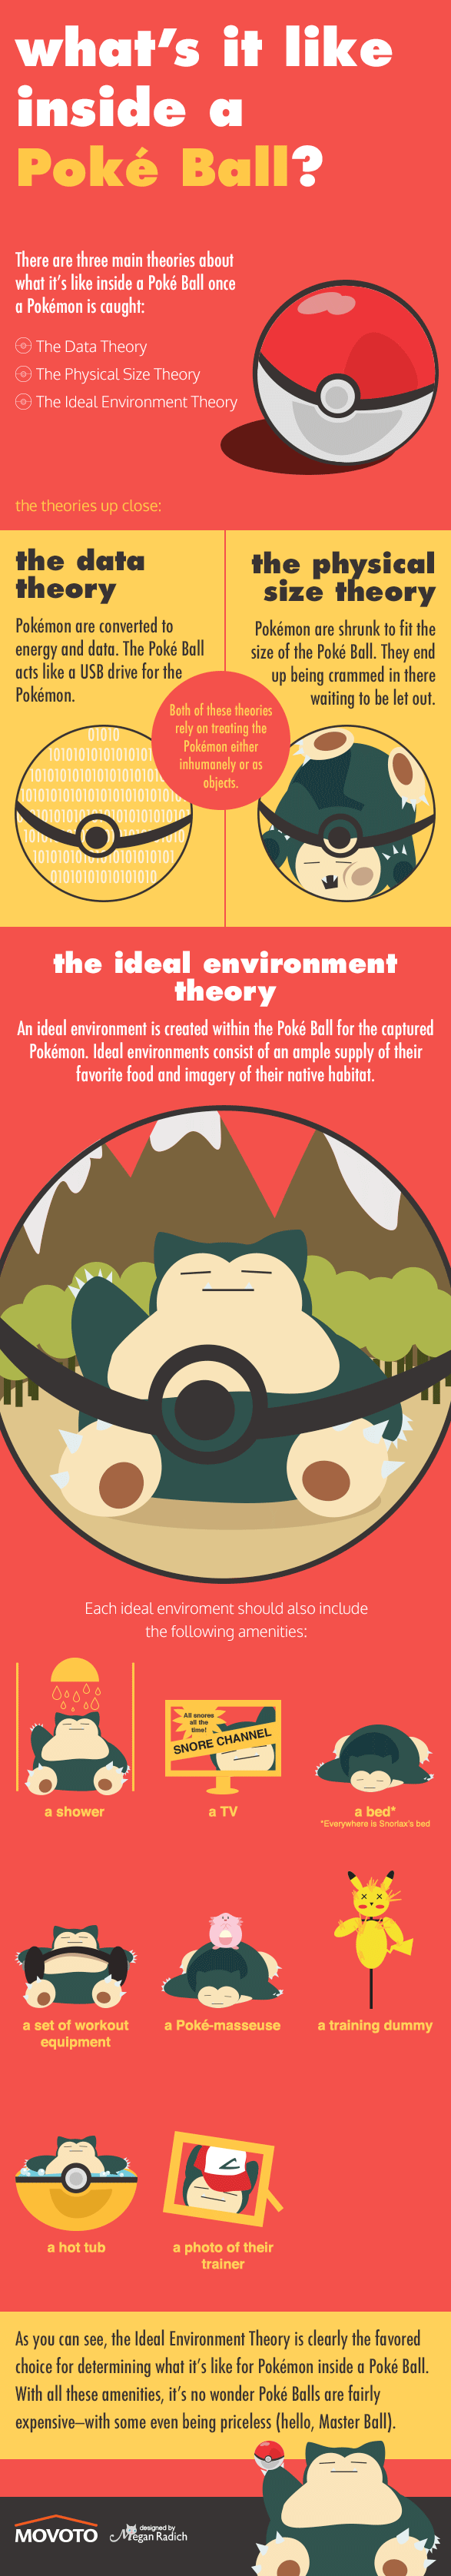 Infographic - What's It Like Inside a Pokémon's Poké Ball?